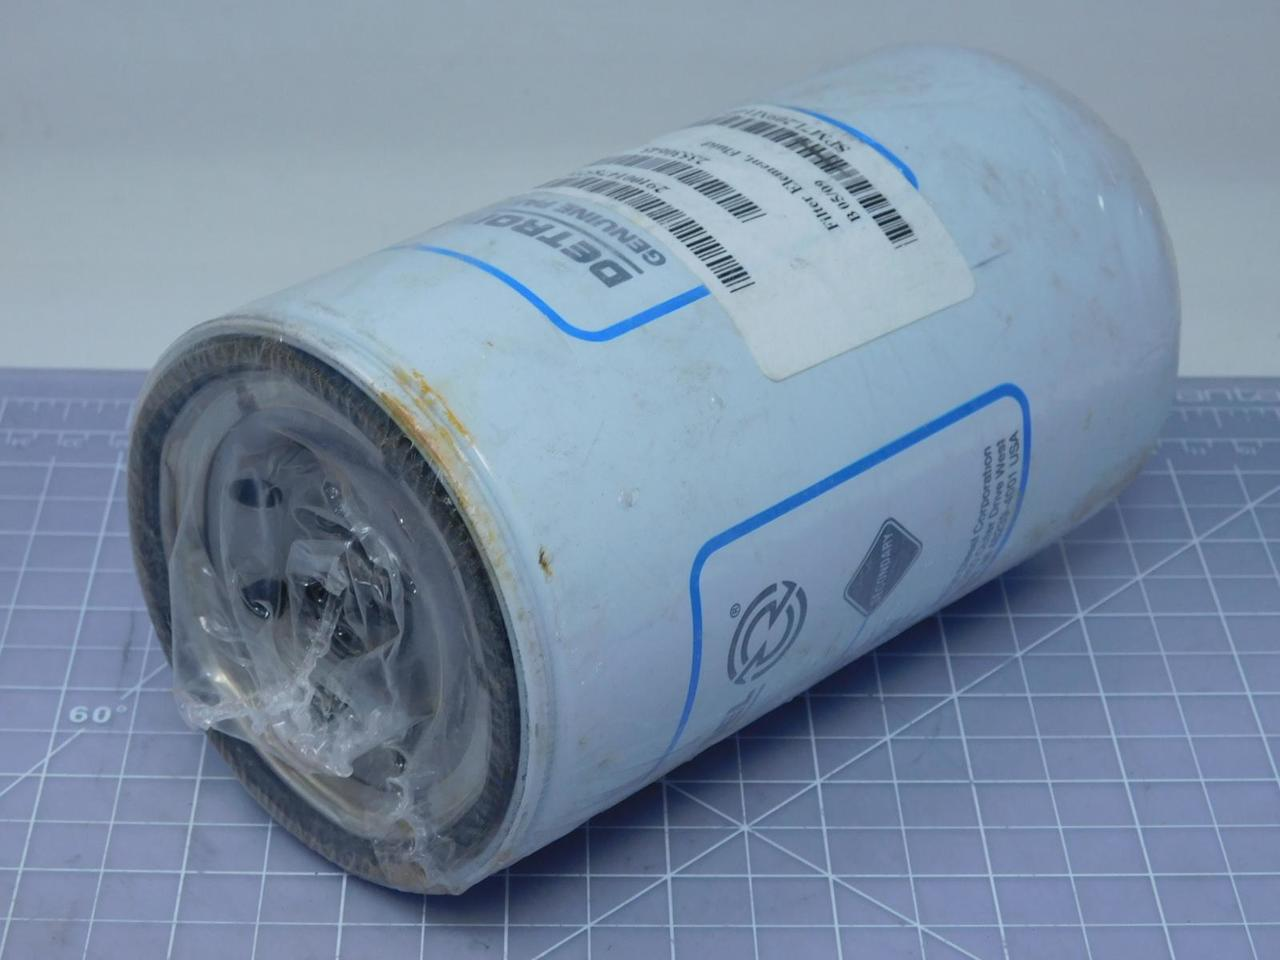 small resolution of detroit diesel spm7l209m1486 0882 fuel filter t118547 for sale